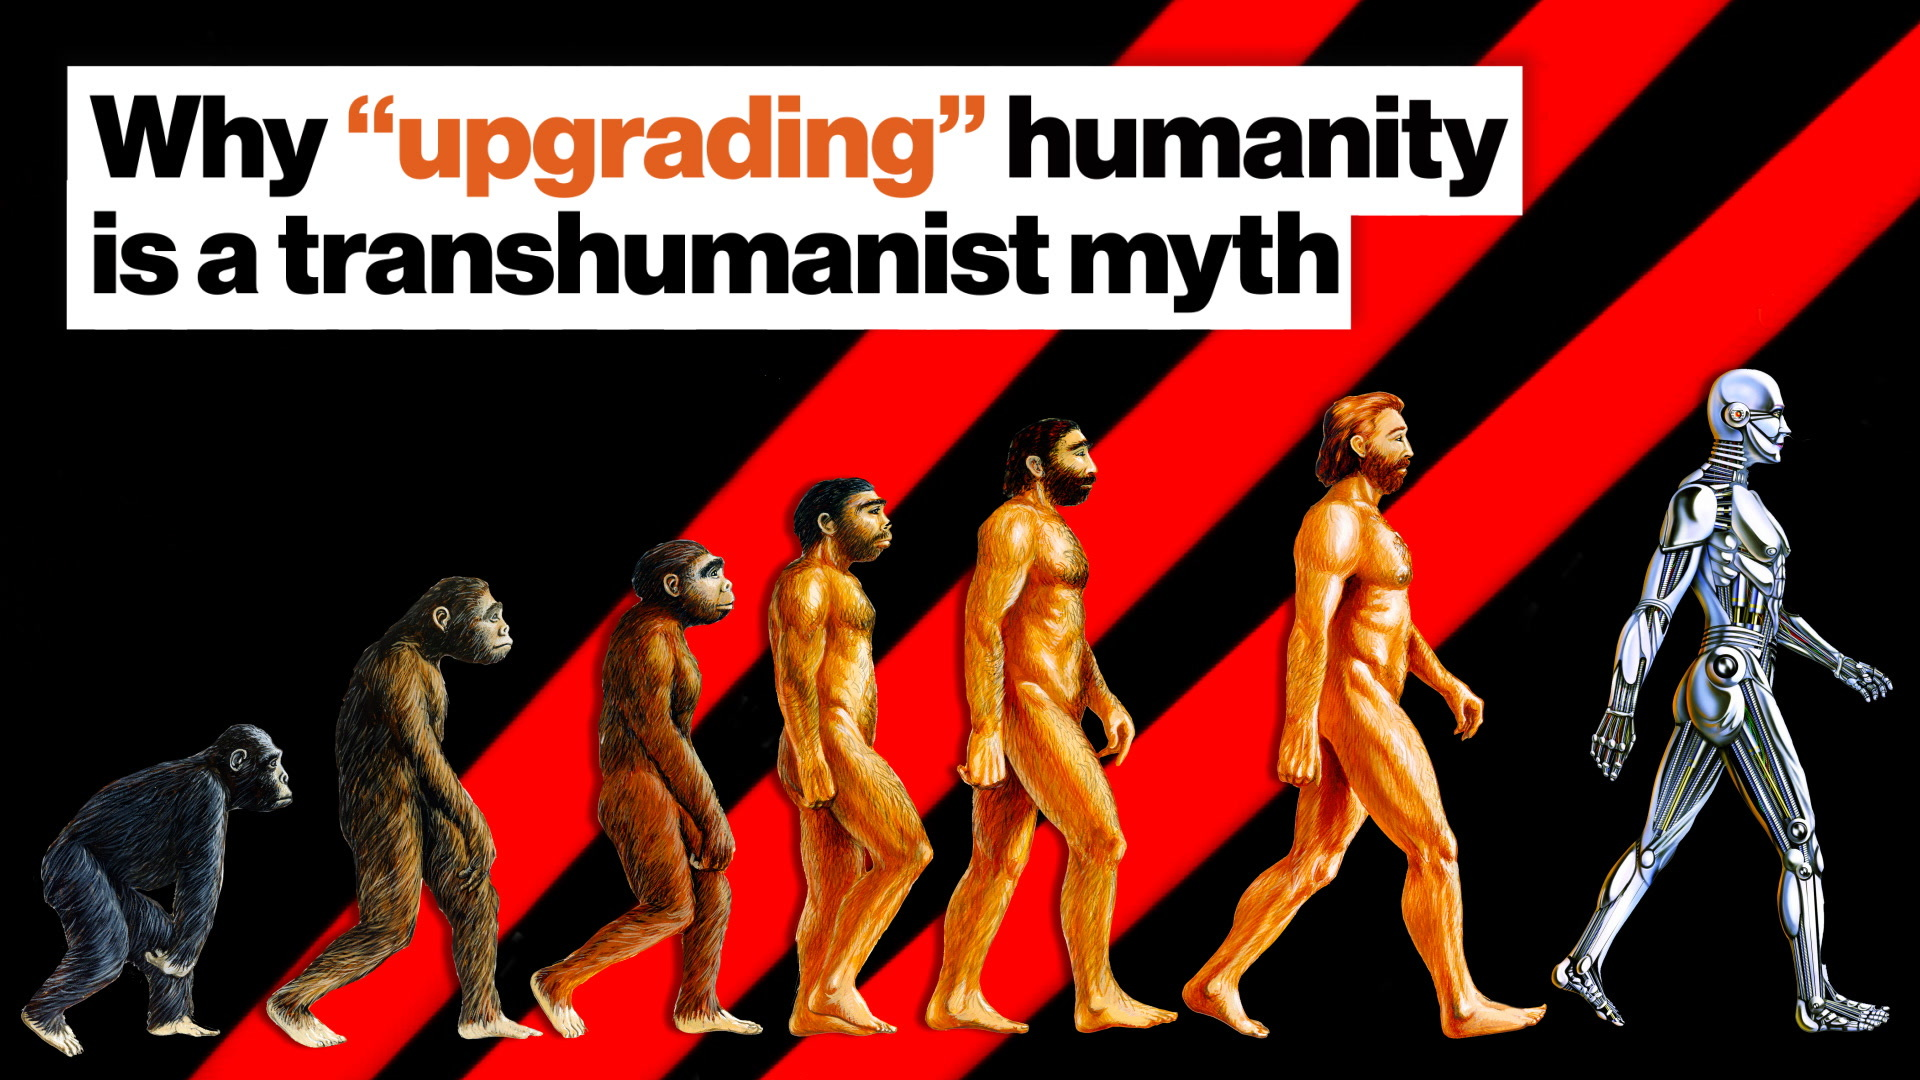 Why  upgrading  humanity is a transhumanist myth